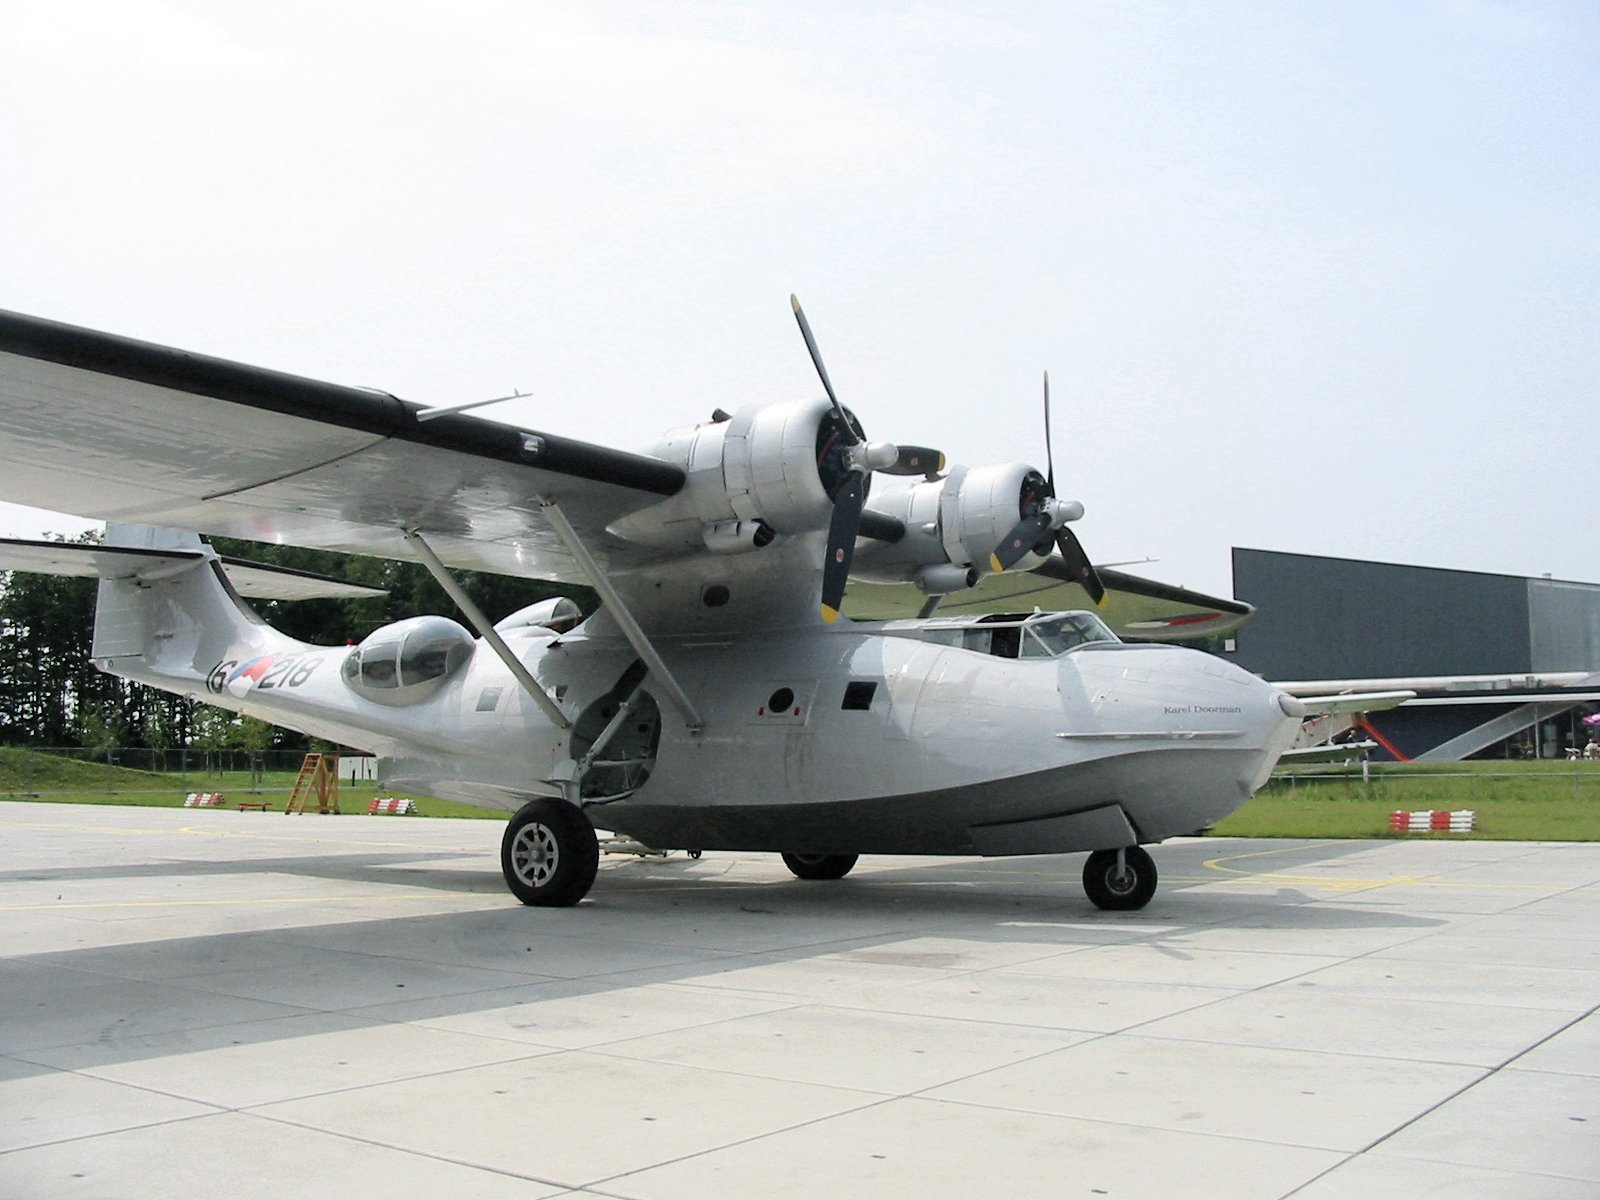 http://upload.wikimedia.org/wikipedia/commons/d/d3/Catalina_Aviodrome.JPG